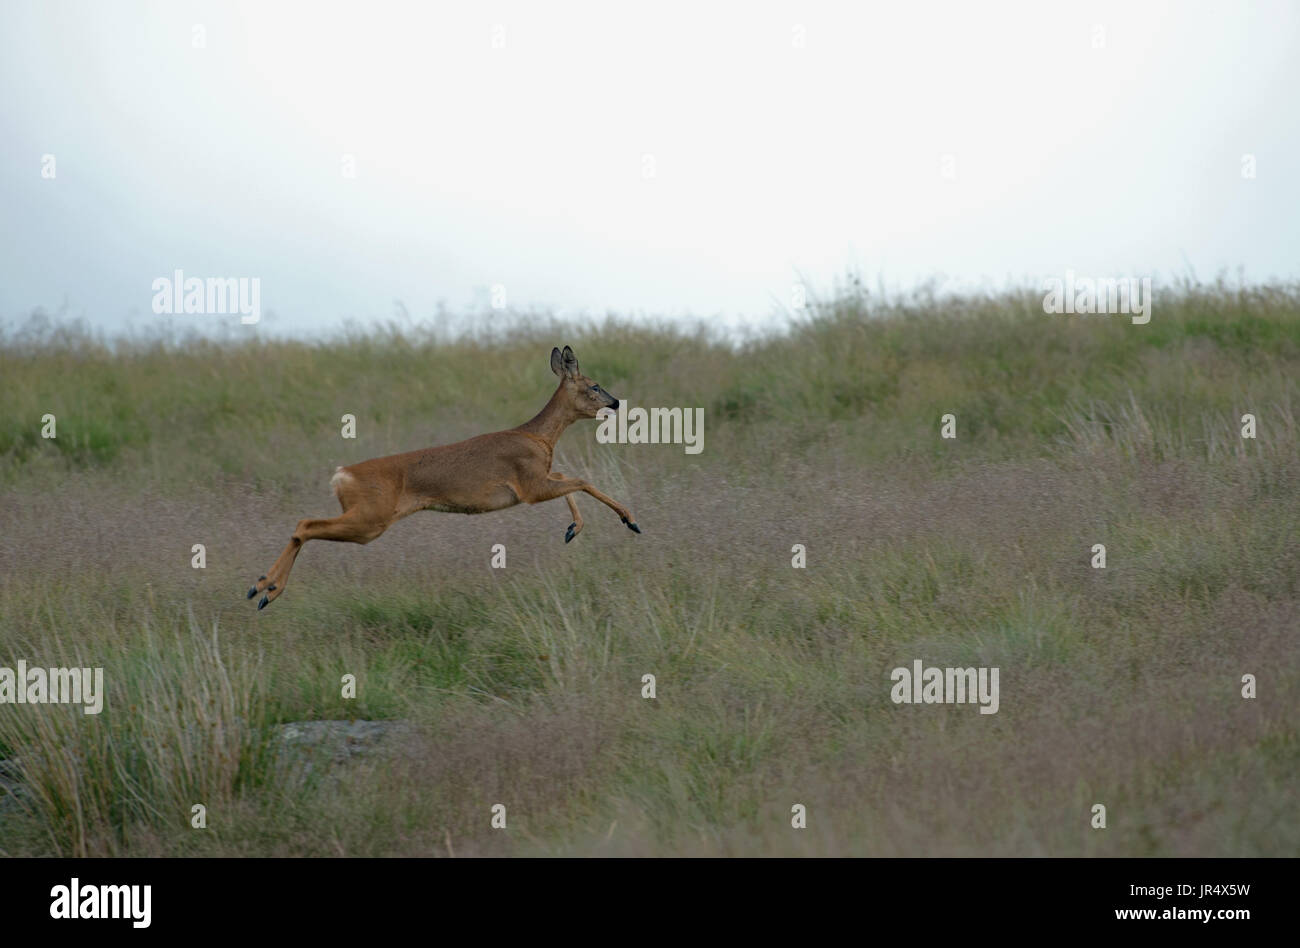 Roe Deer (doe)-Capreolus capreolus, also known as the western Roe Deer runs. Uk - Stock Image